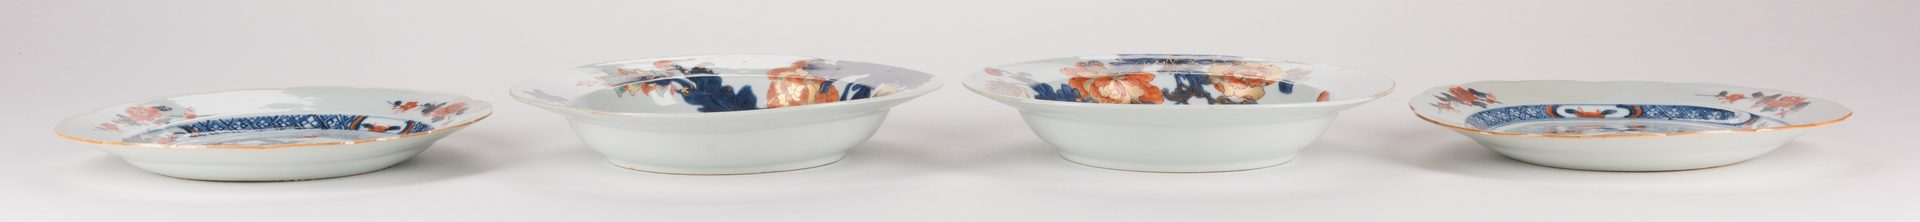 Lot 315: 4 Chinese Imari 18th cent. Porcelain items